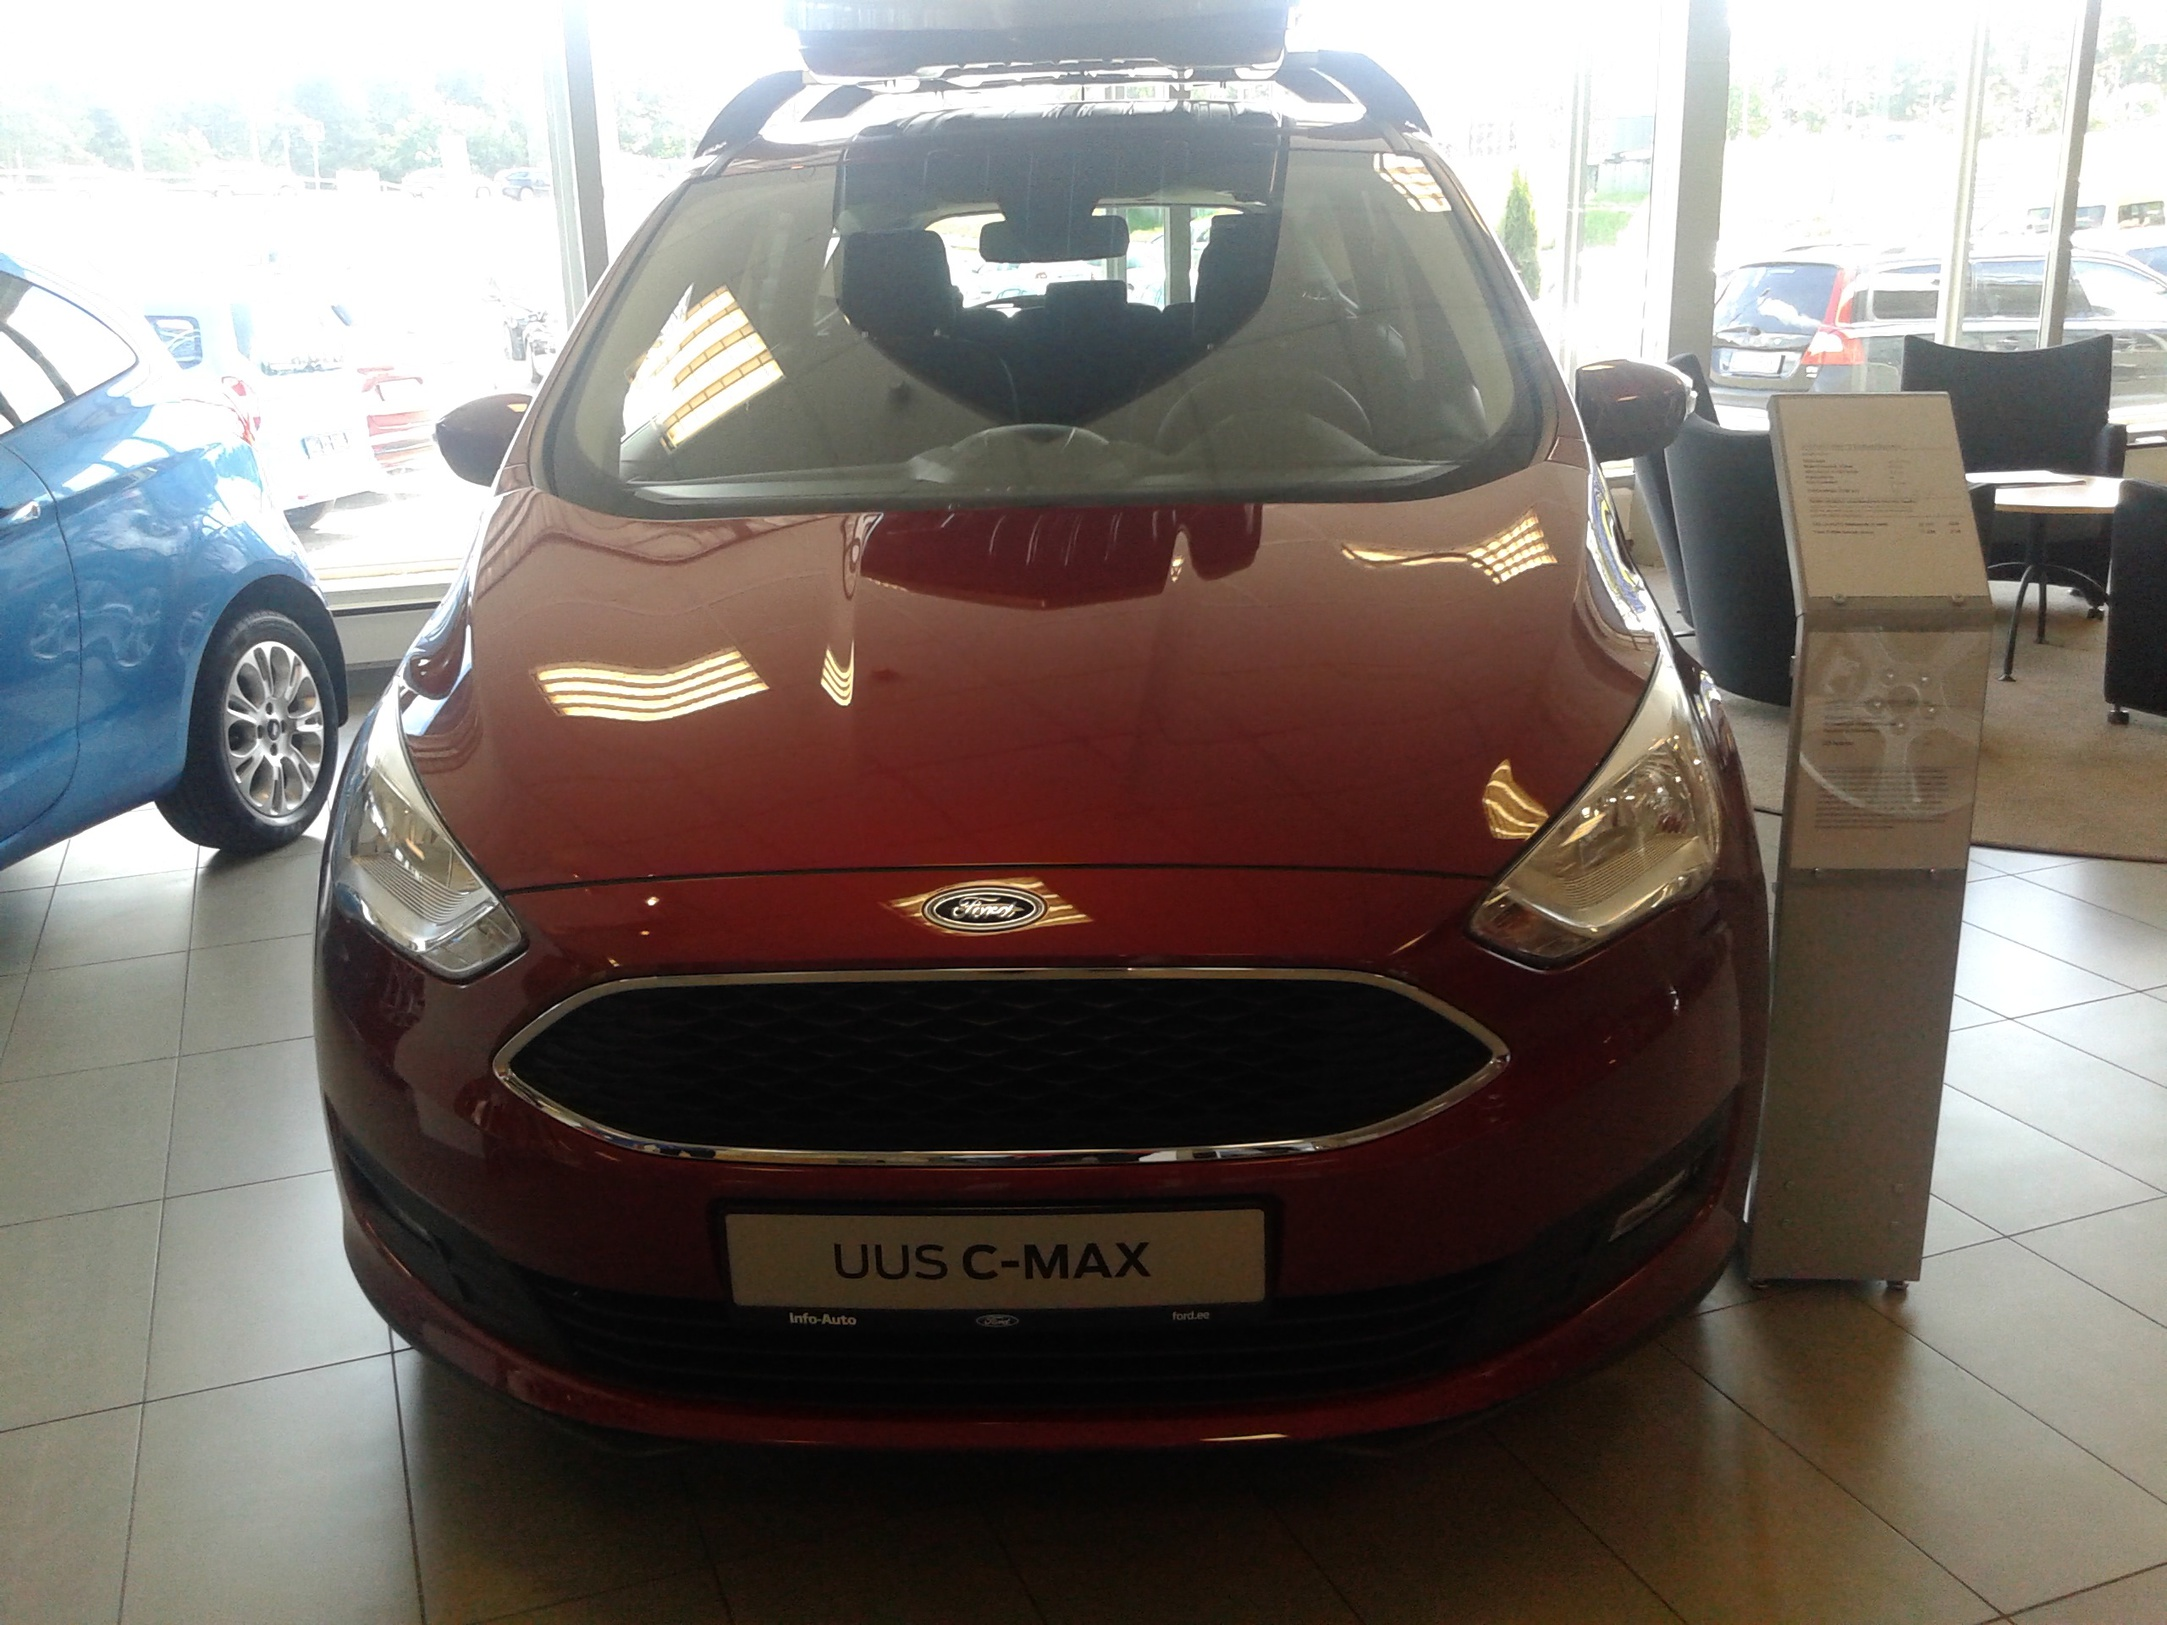 Car paint colour - New Paint Colour Red Rush From Ford Europe 20150616_124923 Jpg